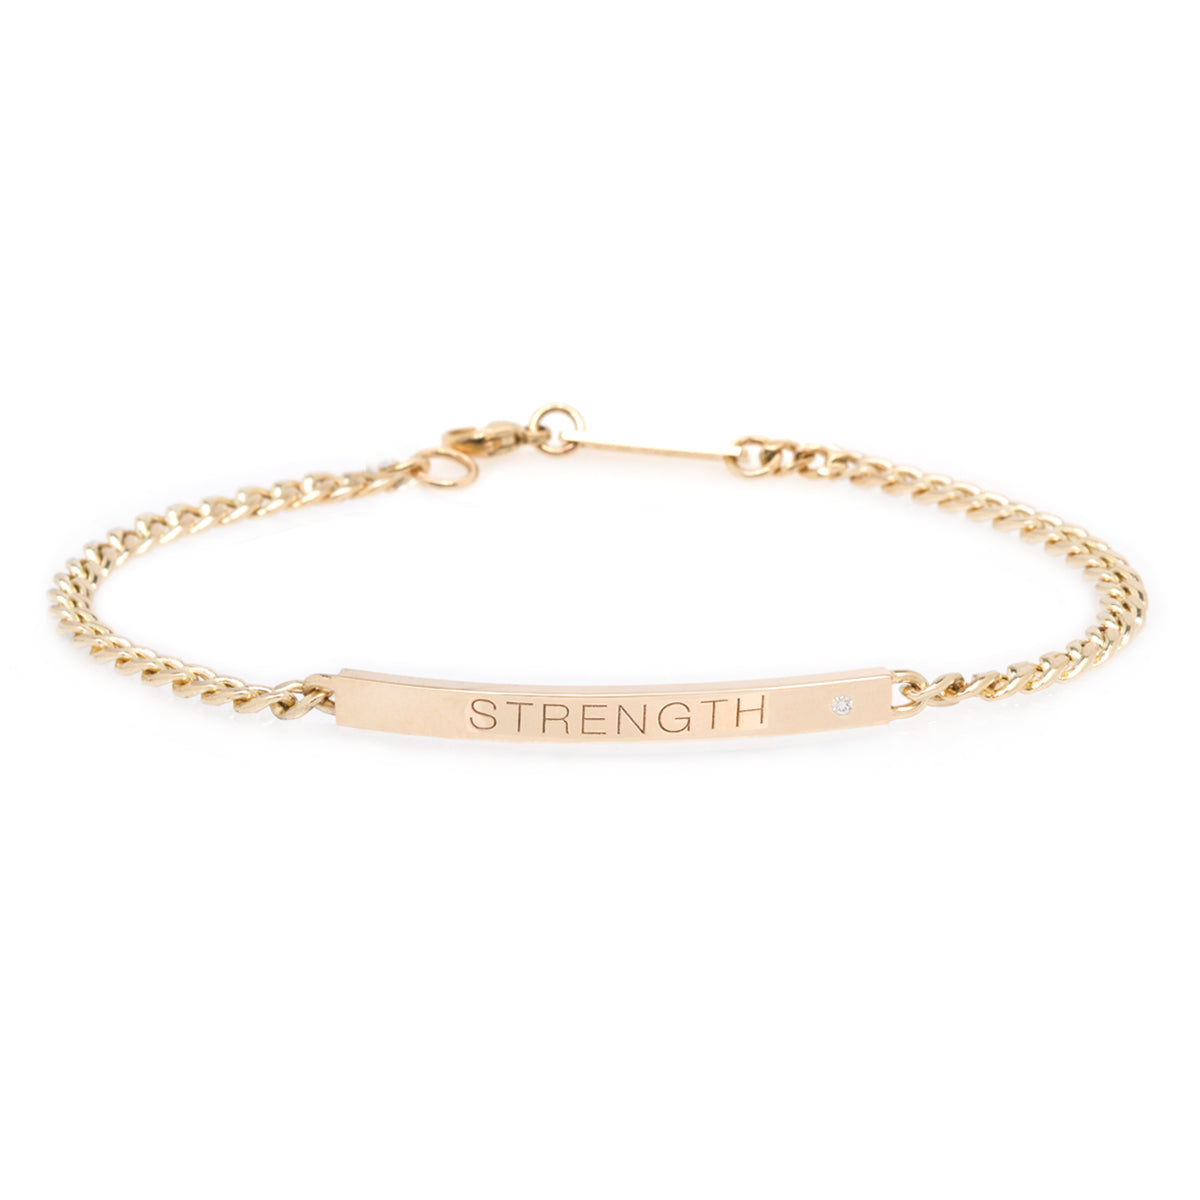 14k small curb chain personalized ID bracelet with diamond